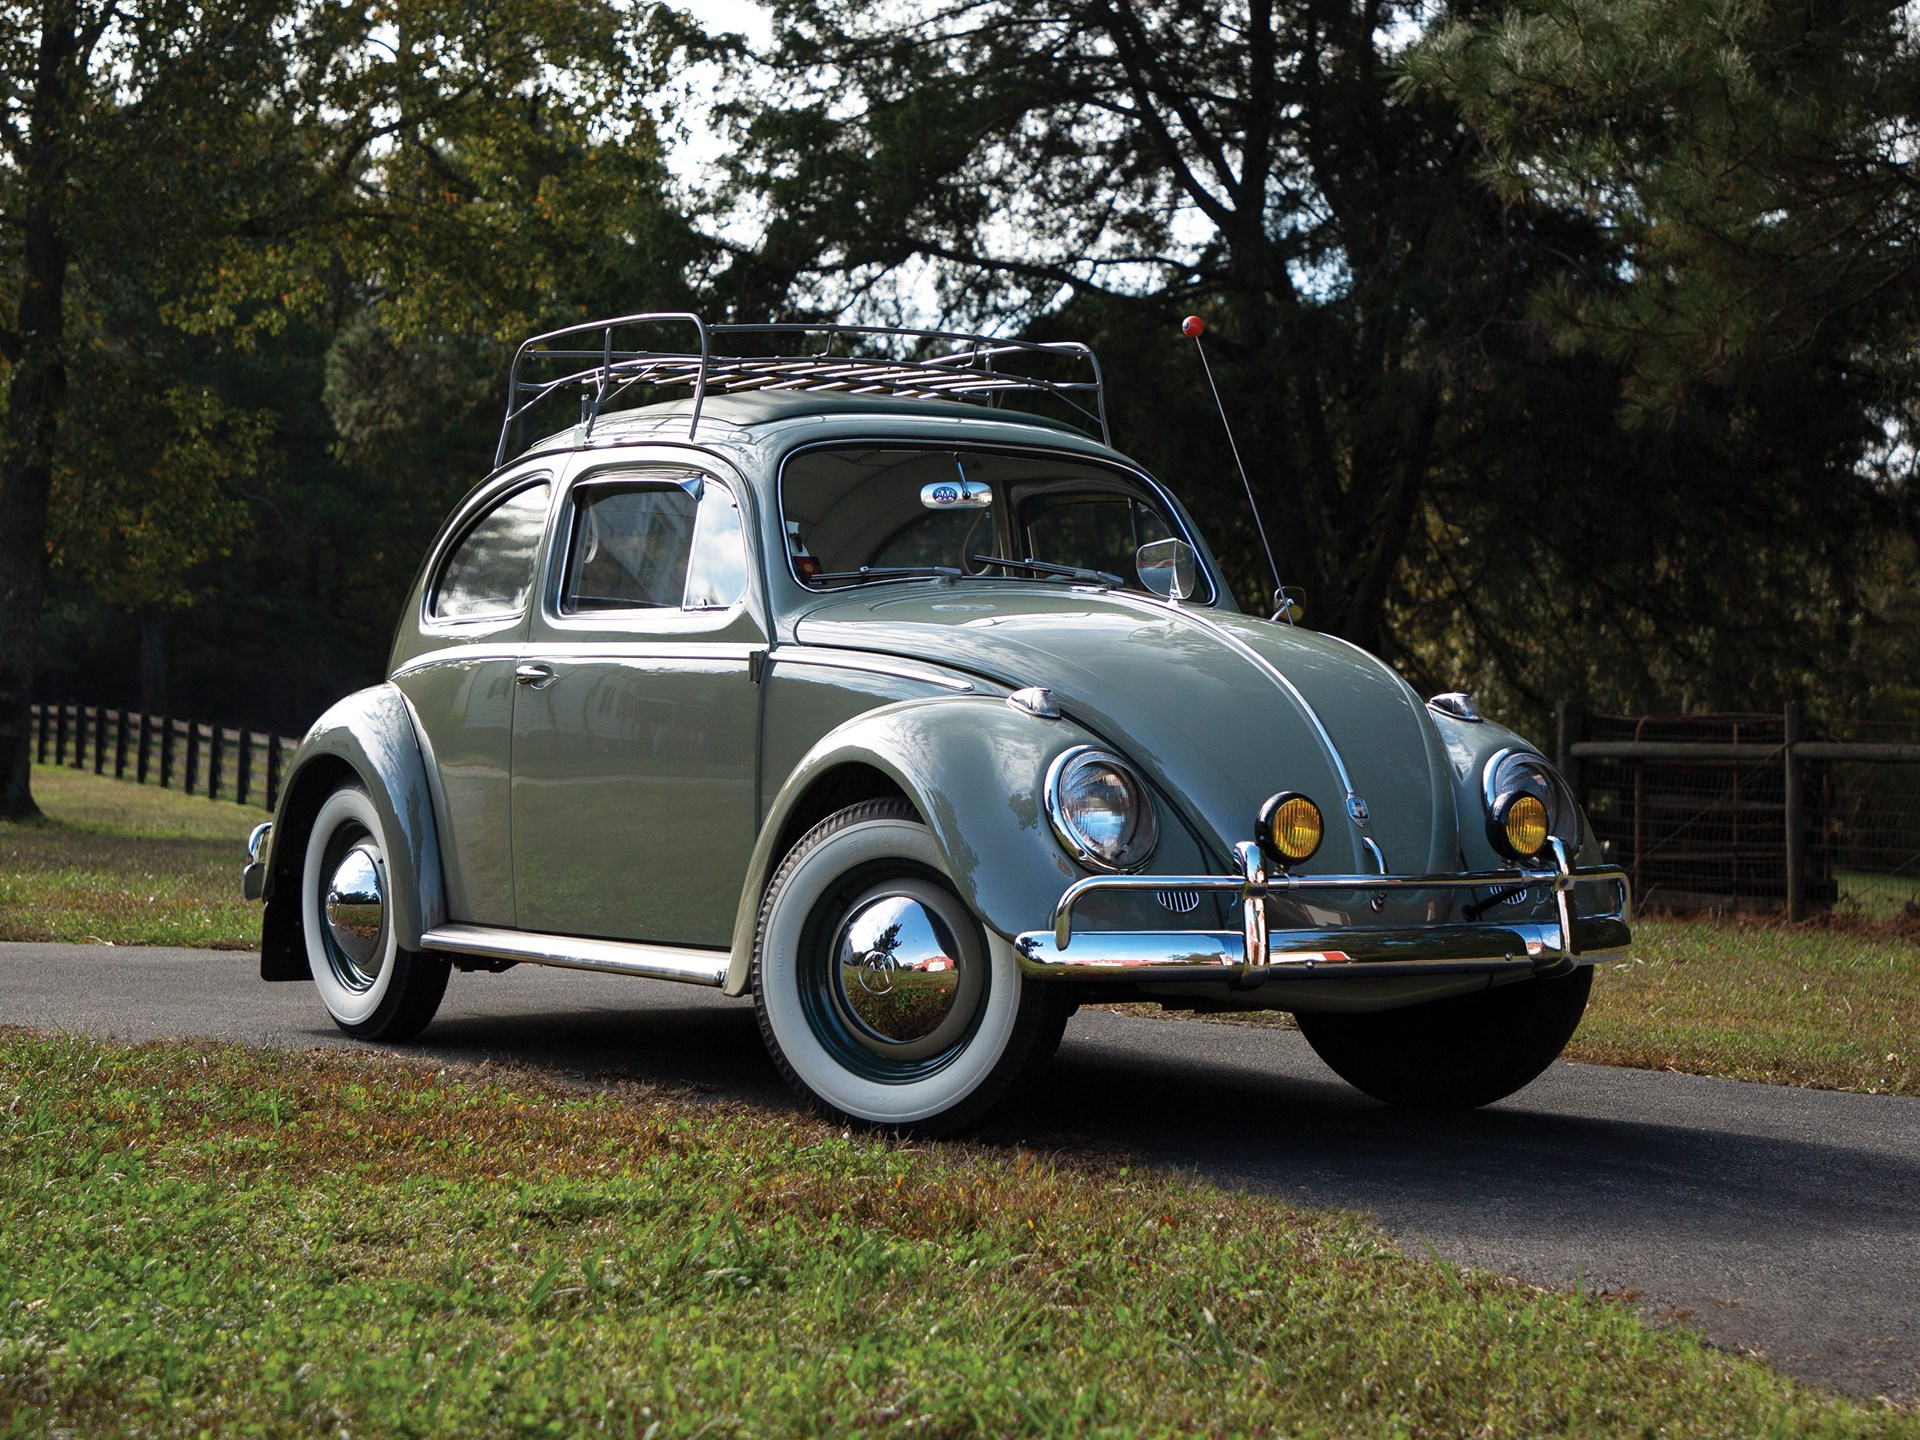 1959 Volkswagen Beetle Deluxe 'Sunroof' Sedan